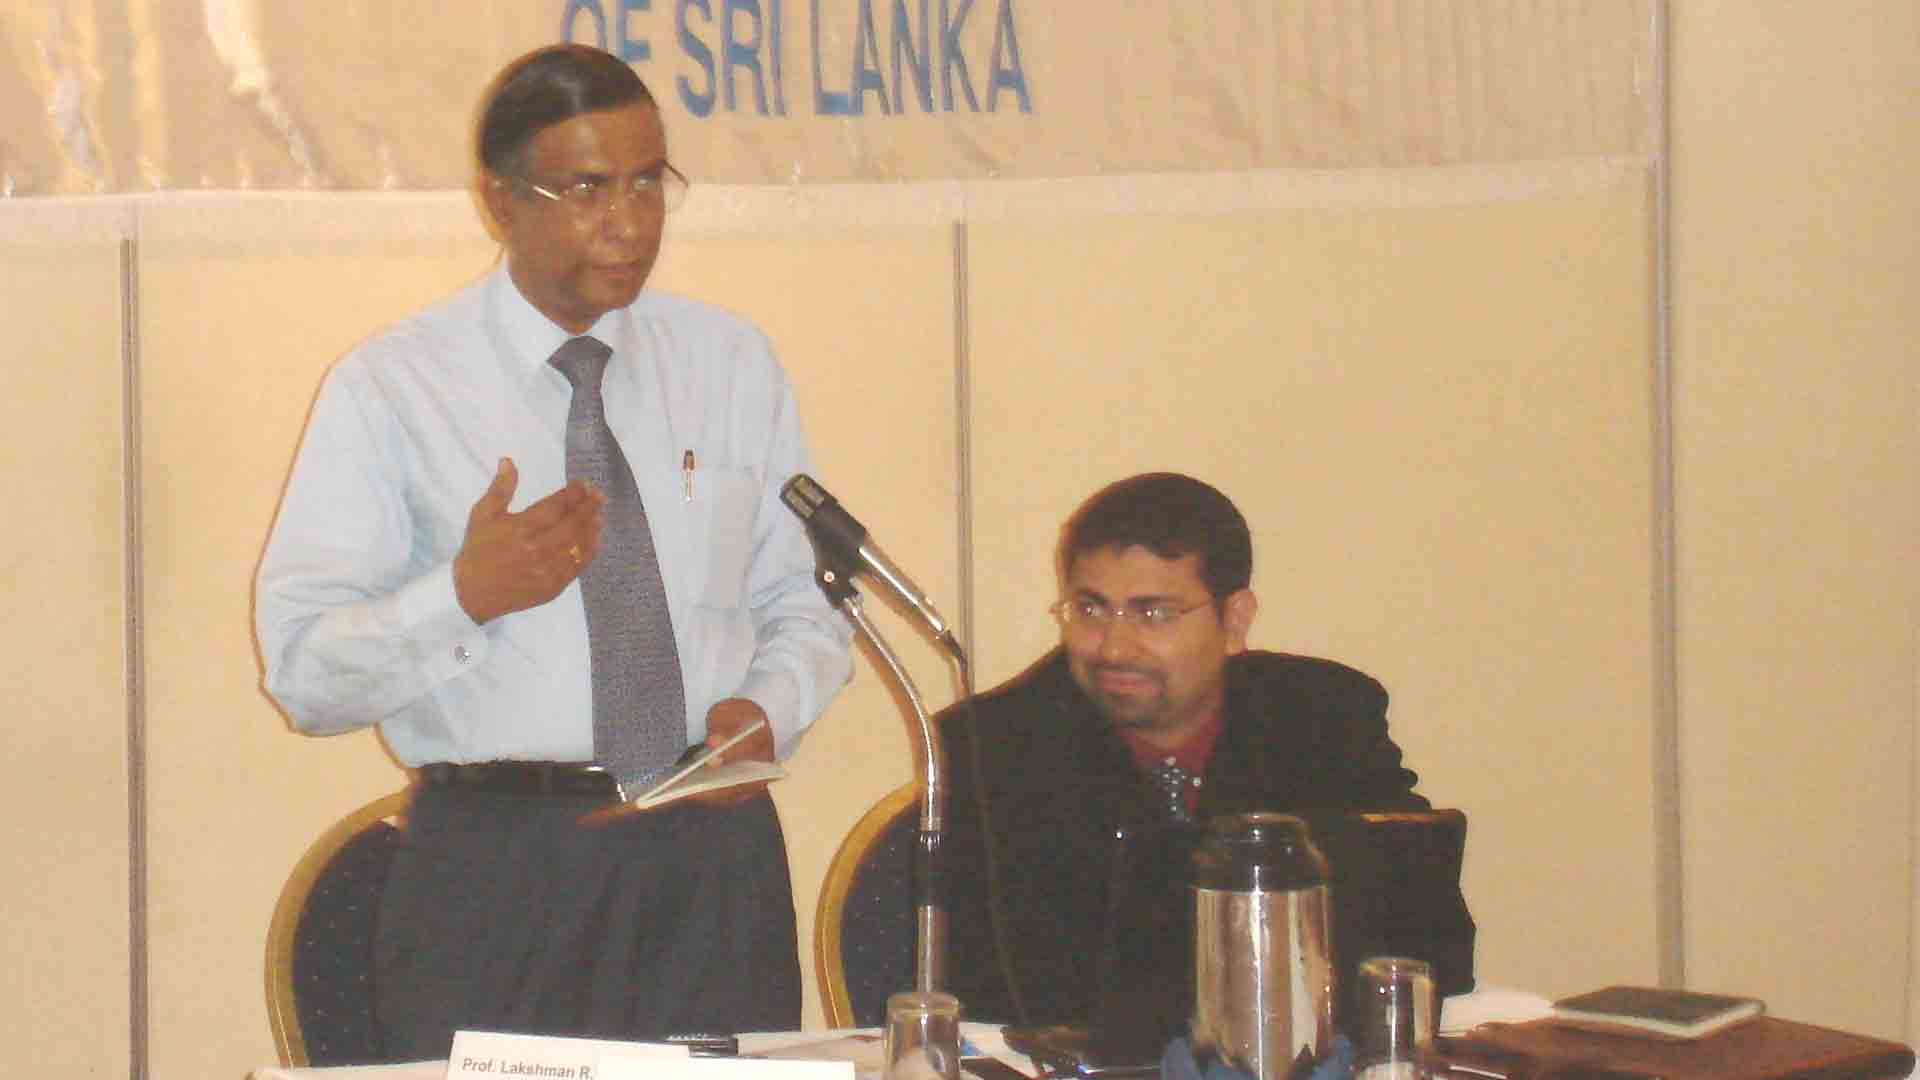 Conducting a workshop in Colombo,Sri Lanka